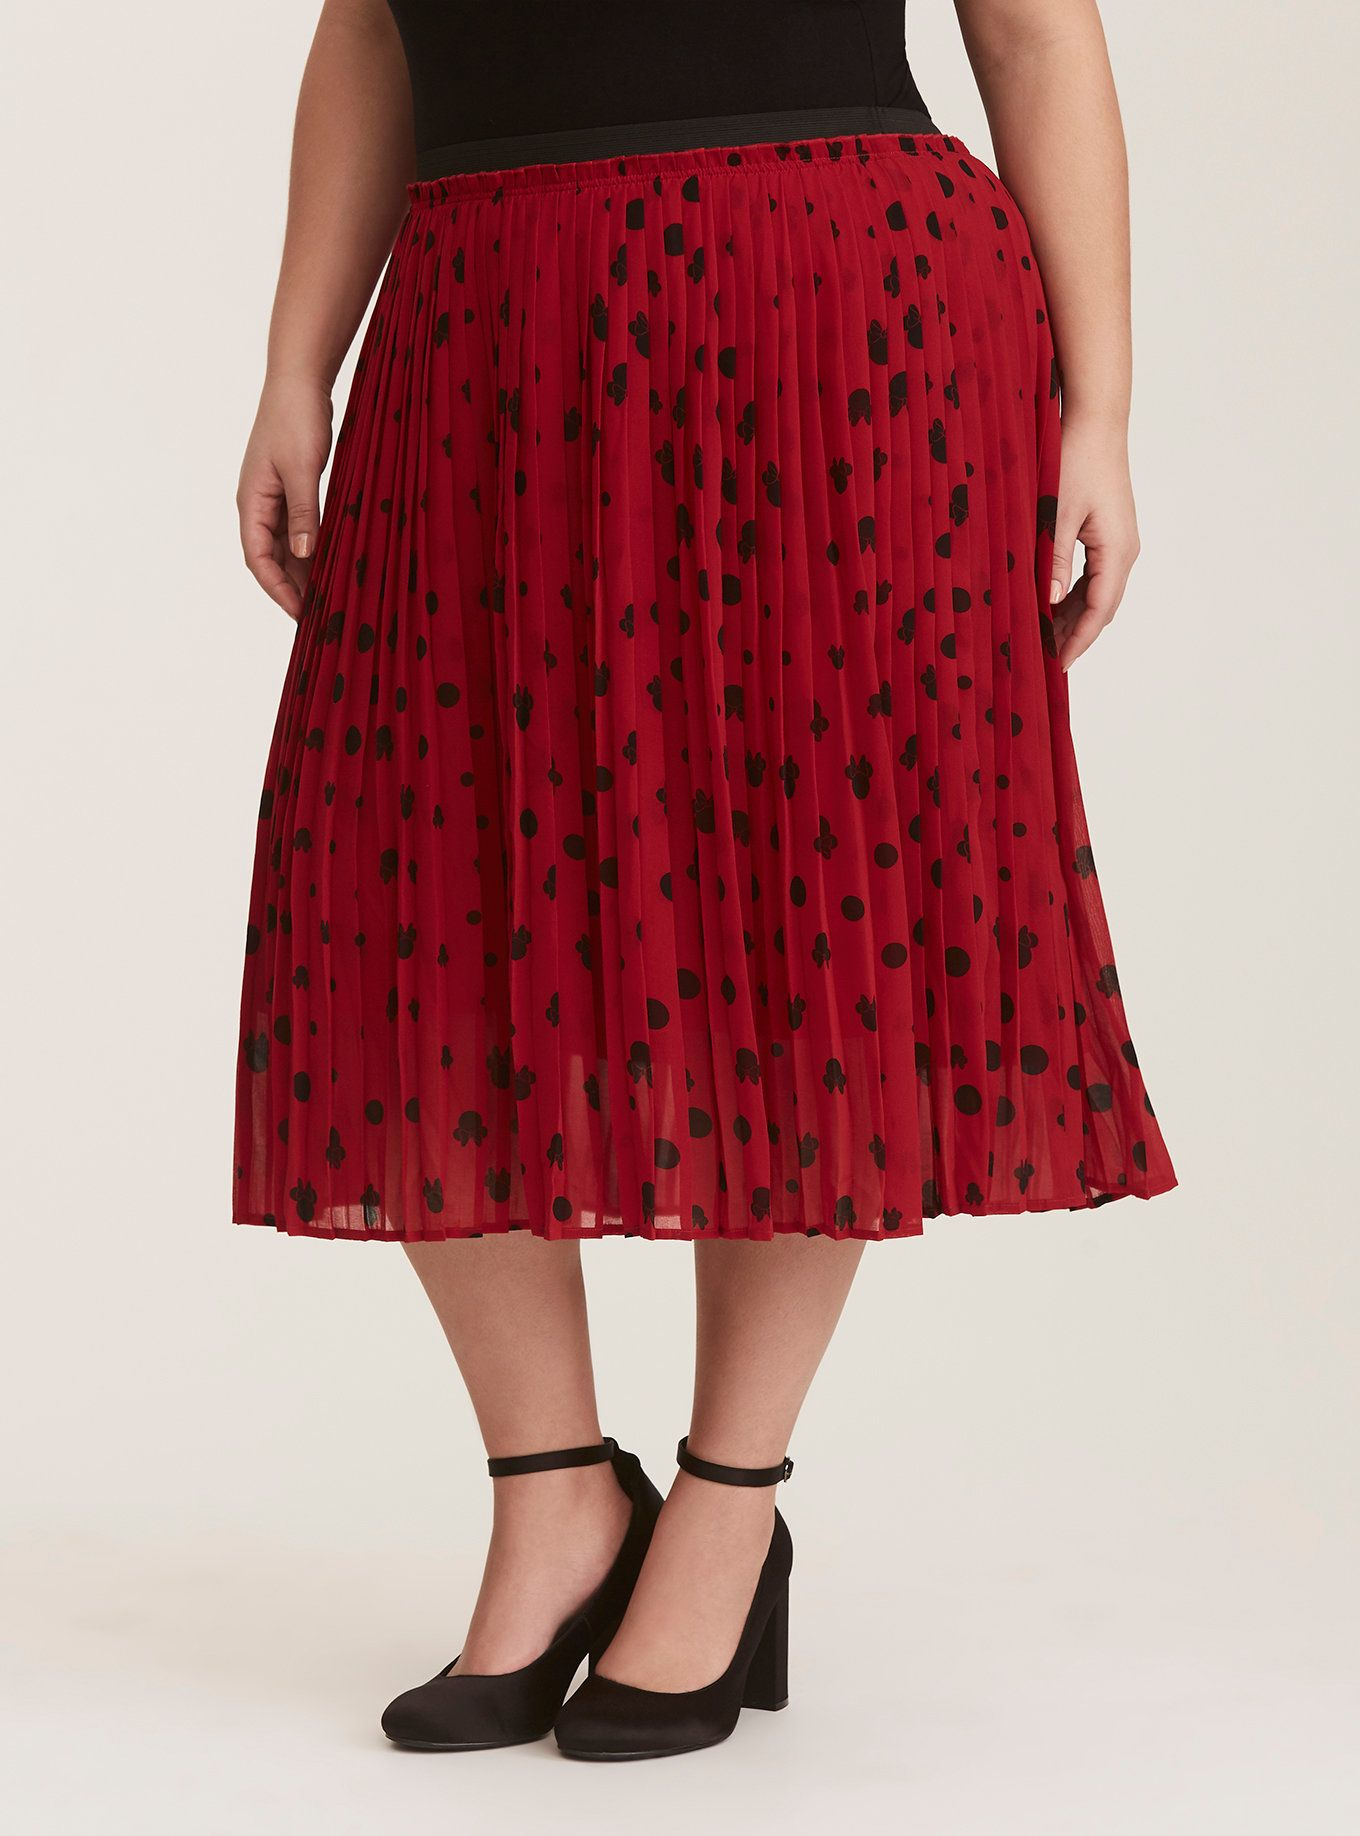 e899e558e9 Disney Minnie Mouse Red & Black Chiffon Pleated Midi Skirt | Stitch ...